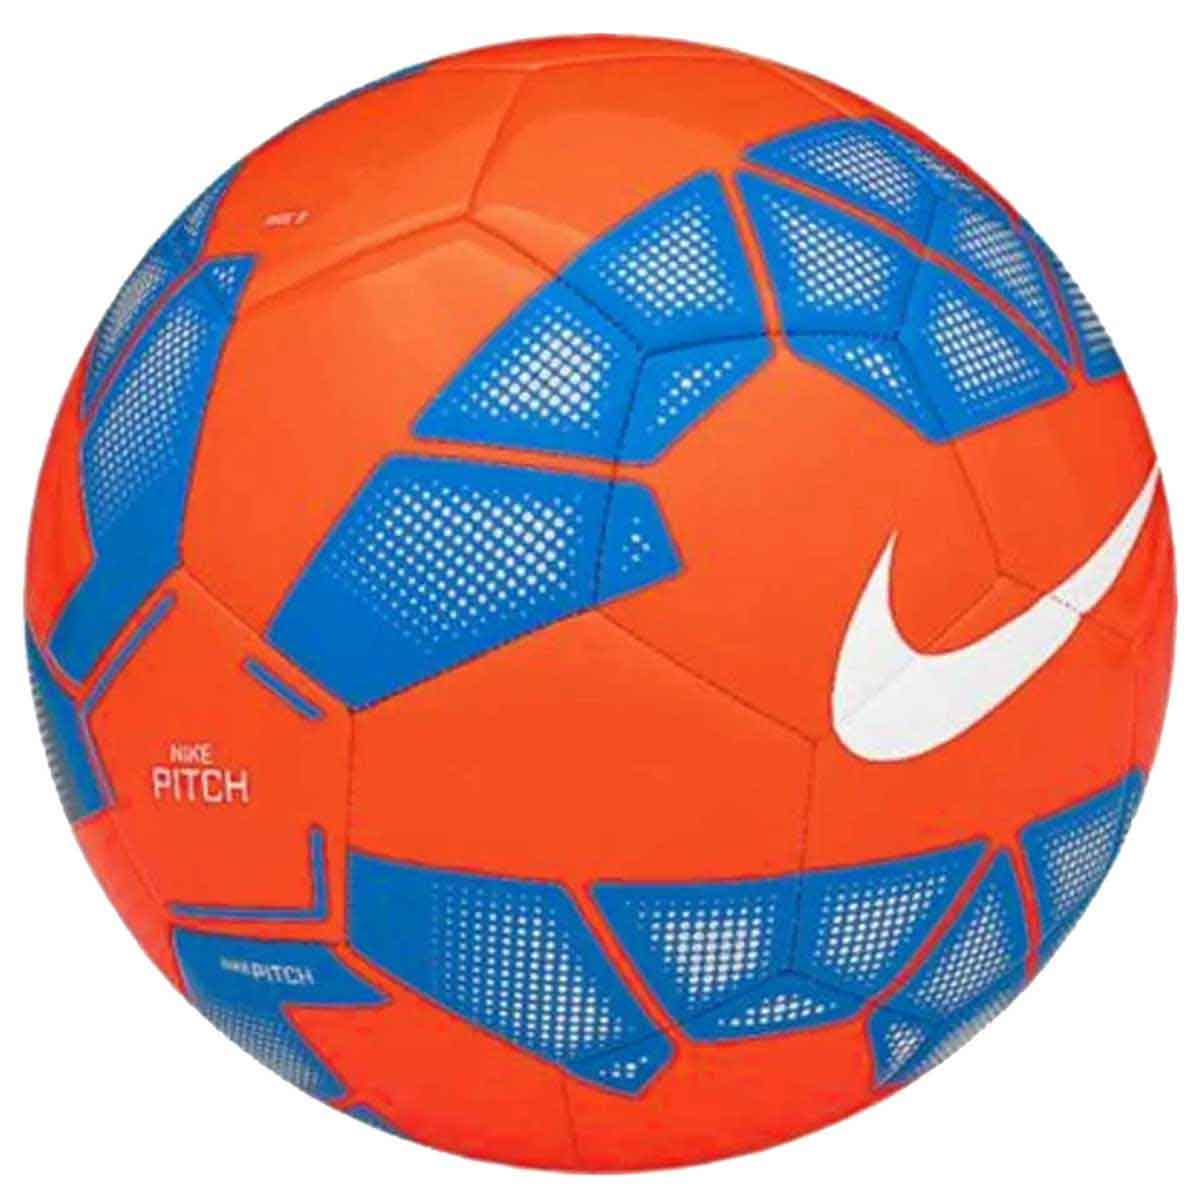 Buy Nike Pitch Football (Orange Blue) Online in India 0328dc9a8